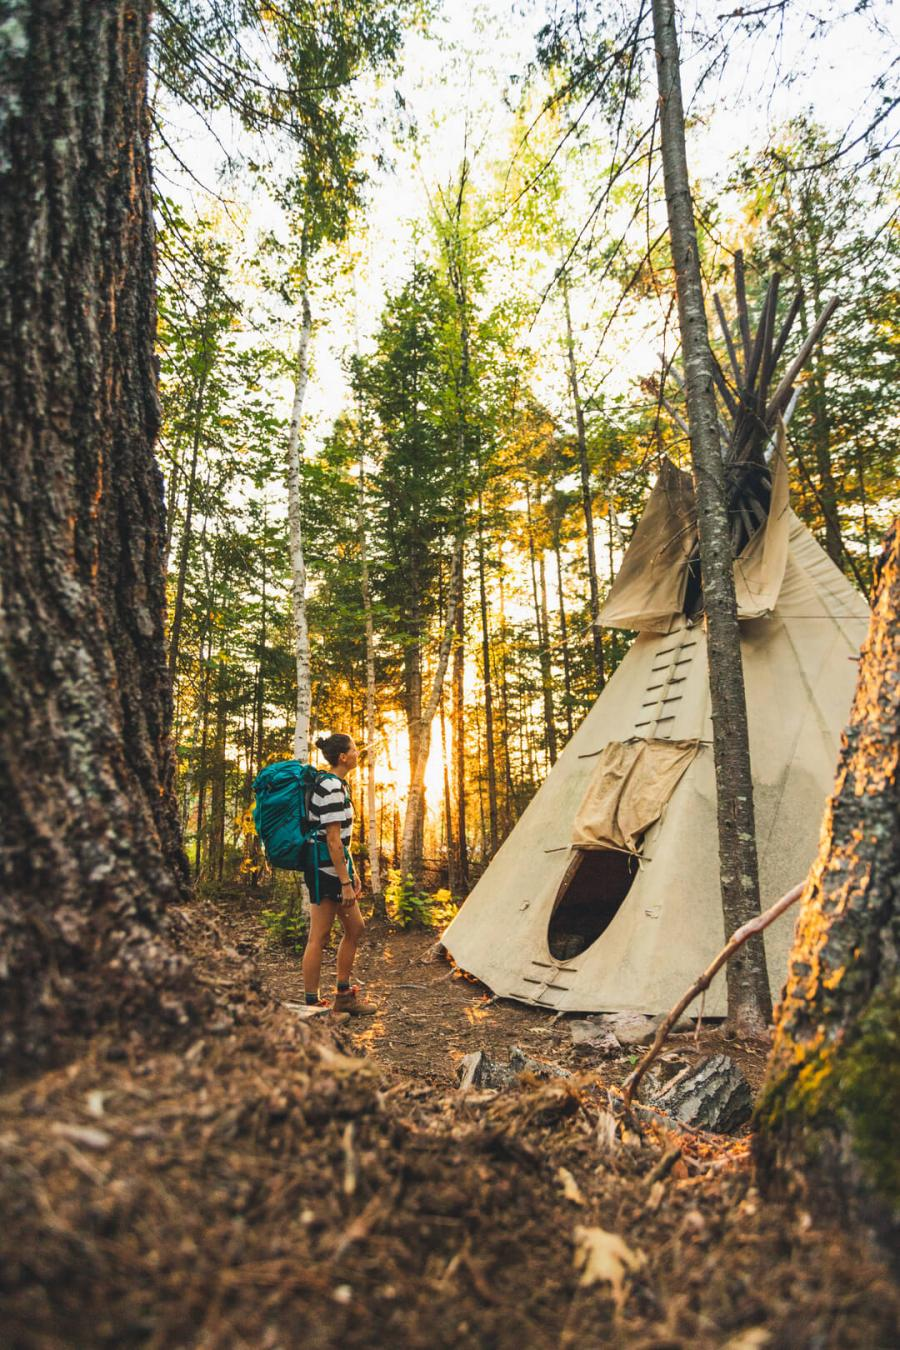 Backcountry camping on the Nepisiguit Mi'gmaq Trail